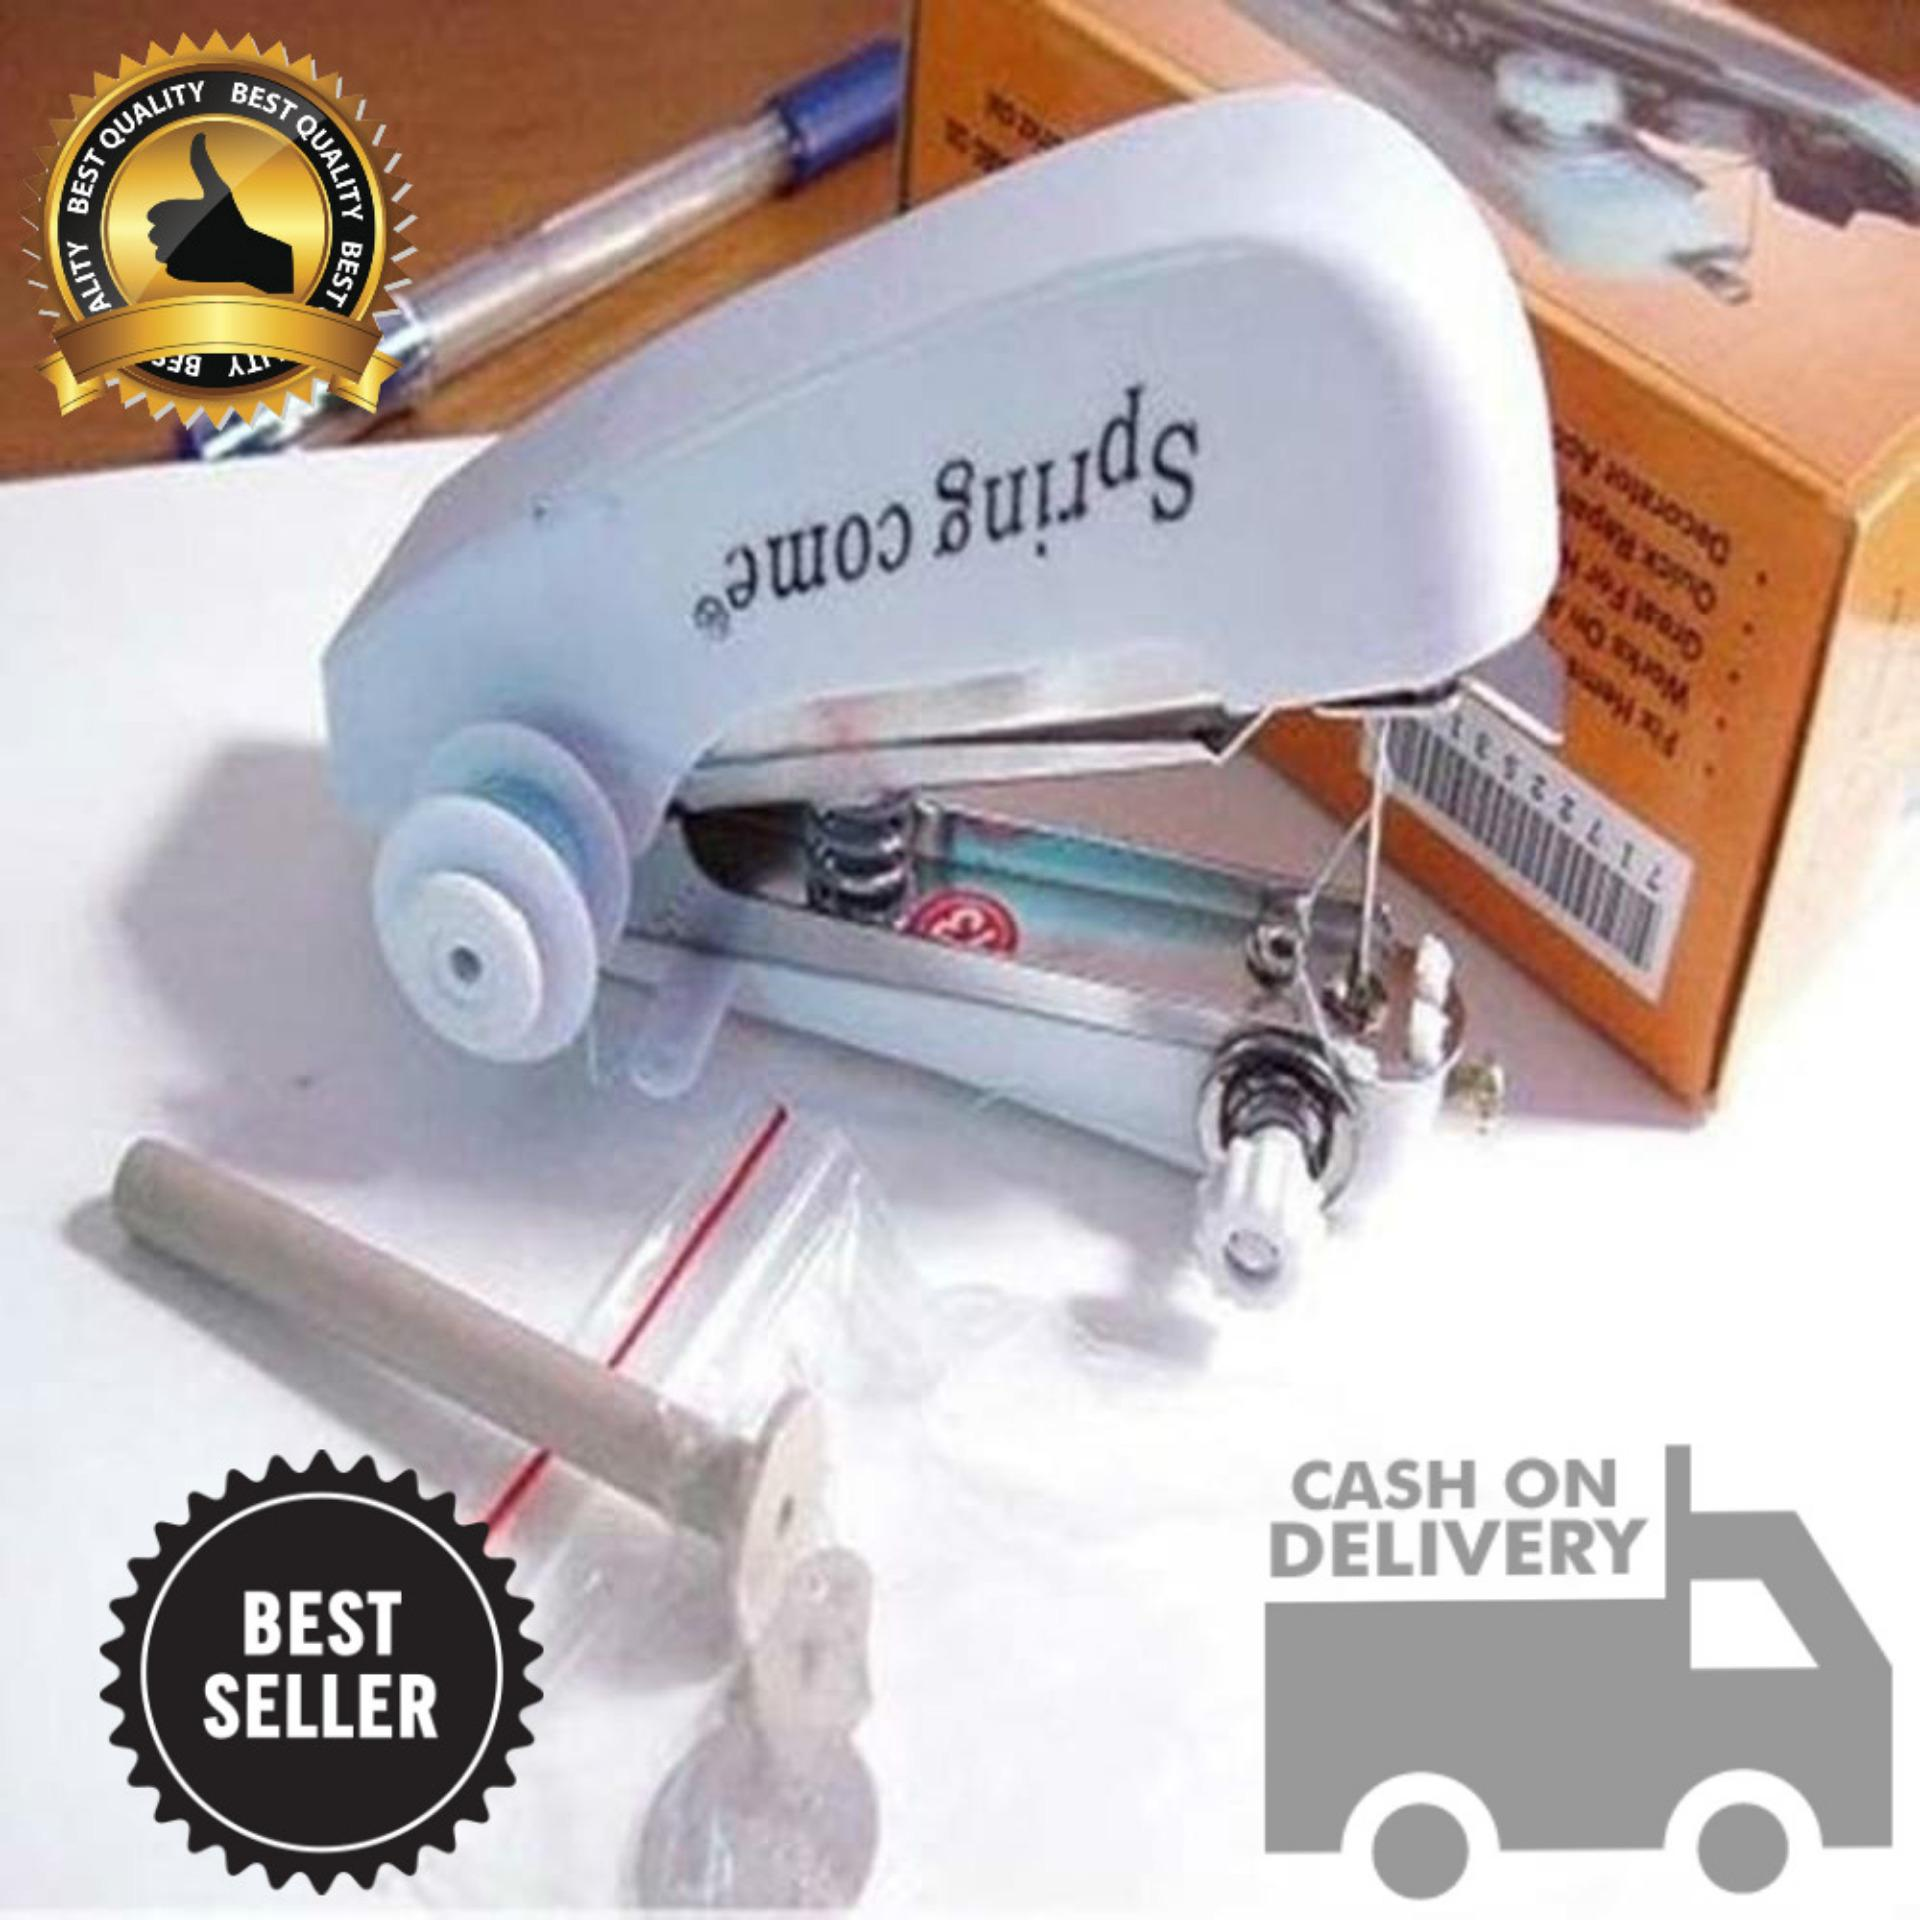 Big King Shop - mesin jahit baju mini tangan  sewing singer staples (random)